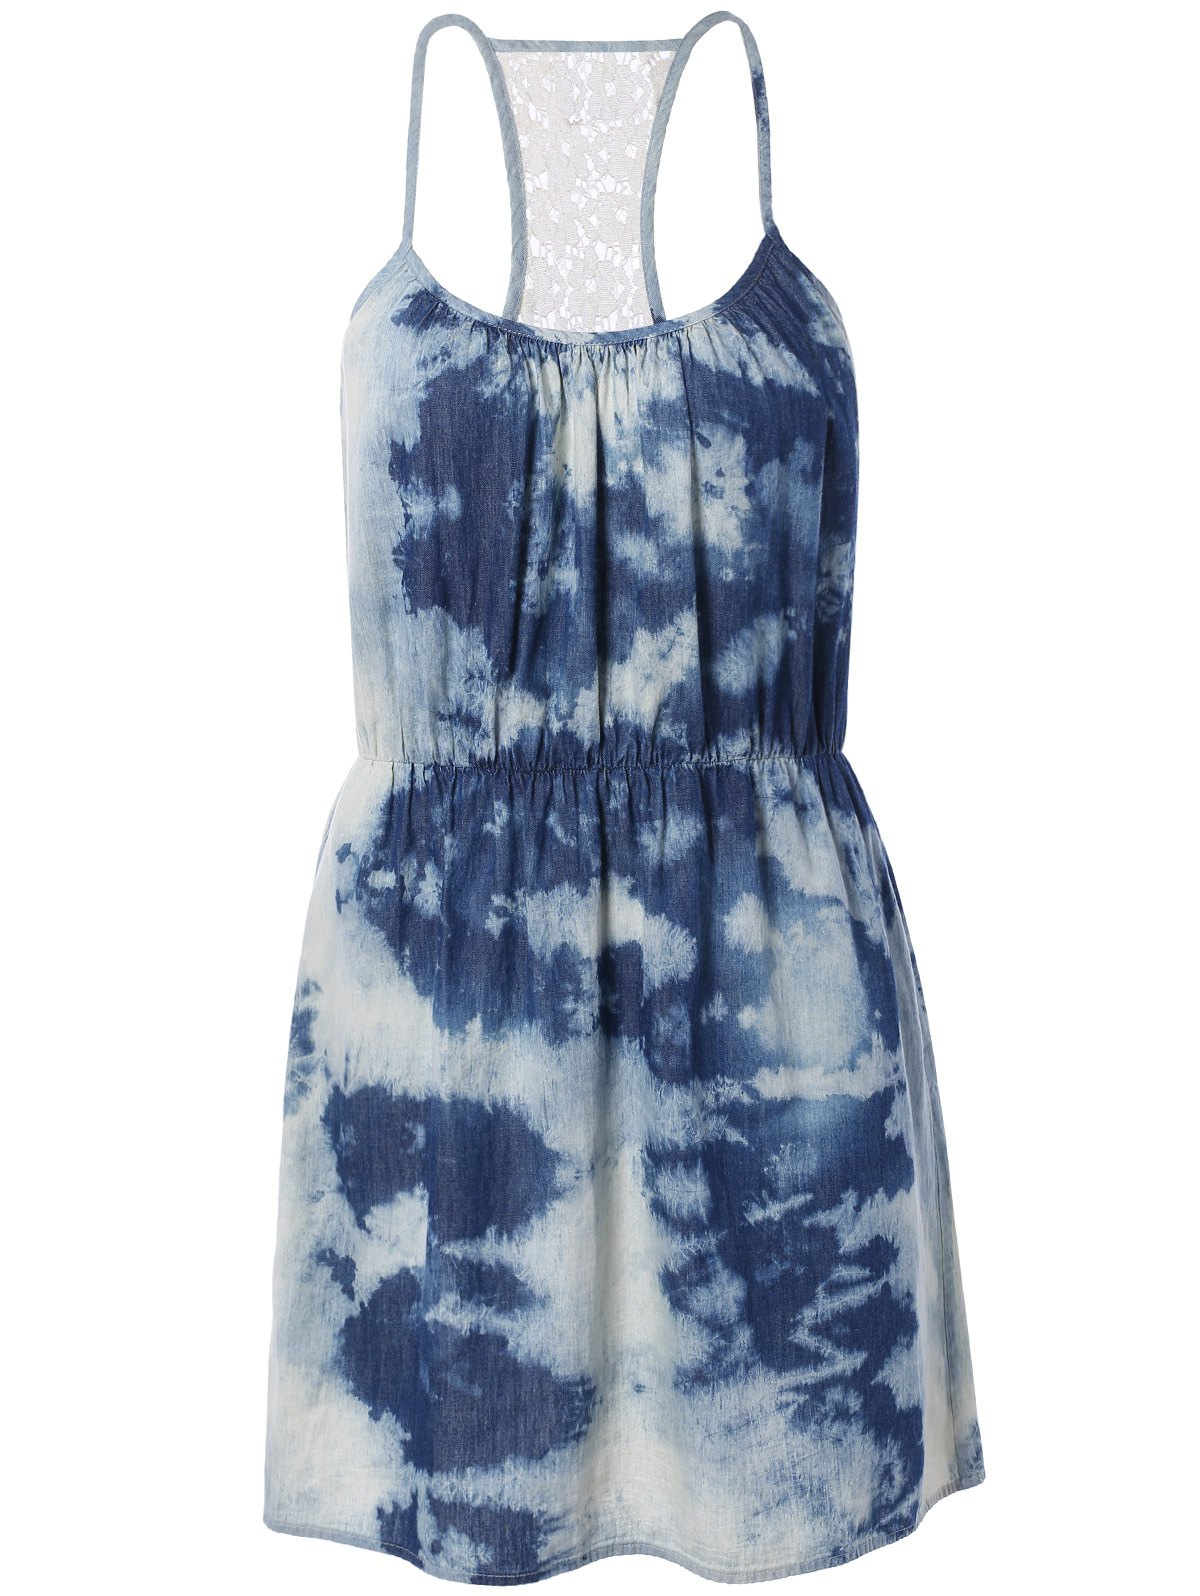 Spaghetti Strap Tie-Dyed Lace Spliced Dress